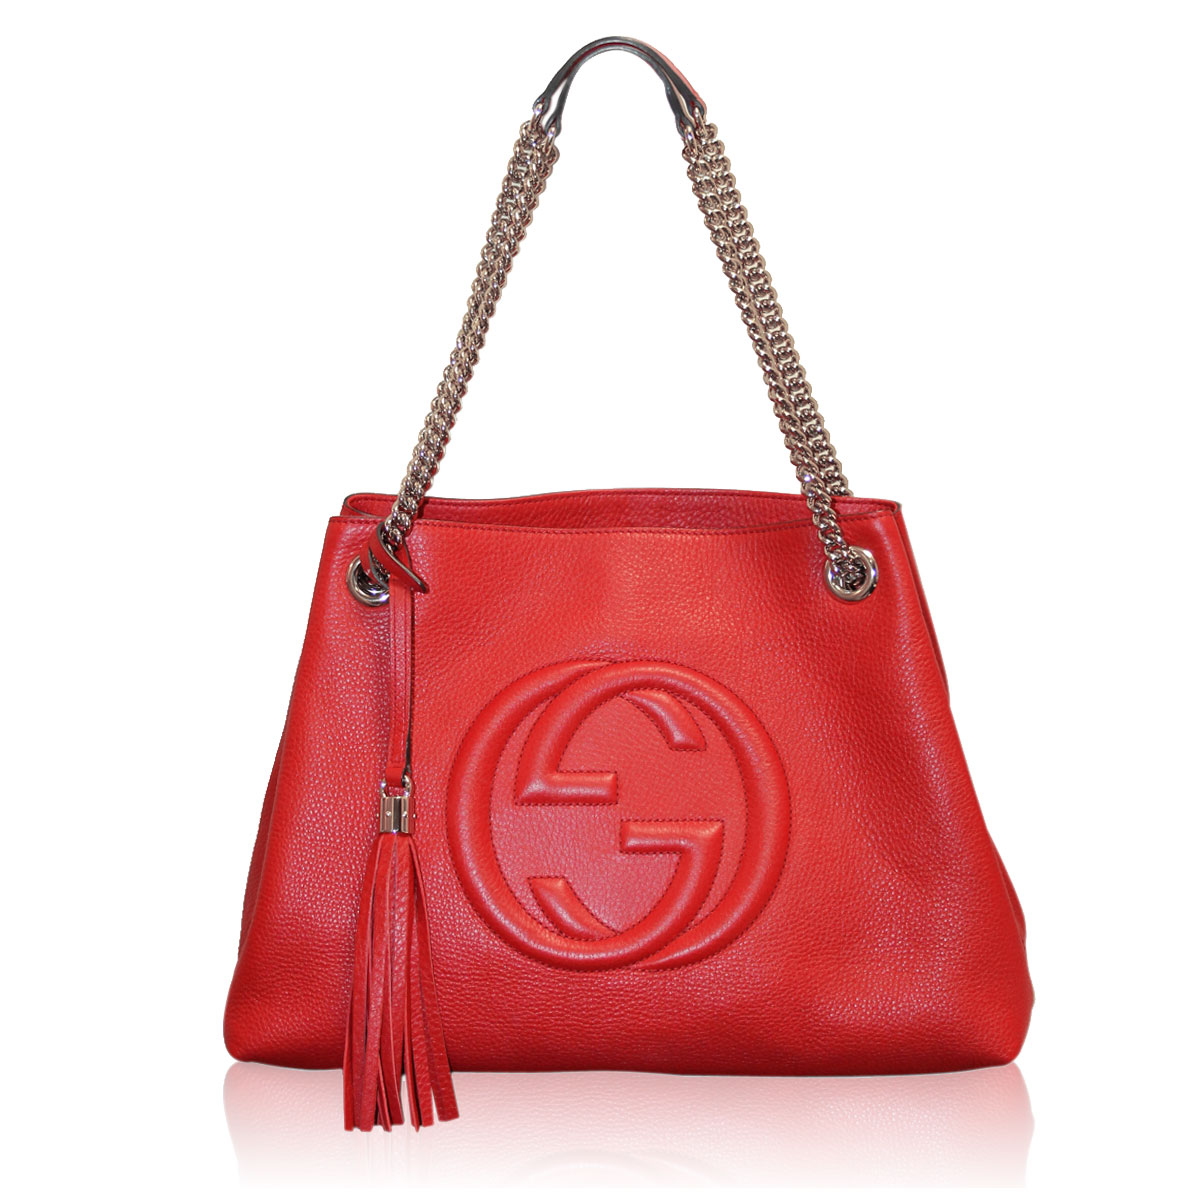 b49b09552d9 Gucci Red Leather Soho SHW Tote Chain Shoulder Bag Purse